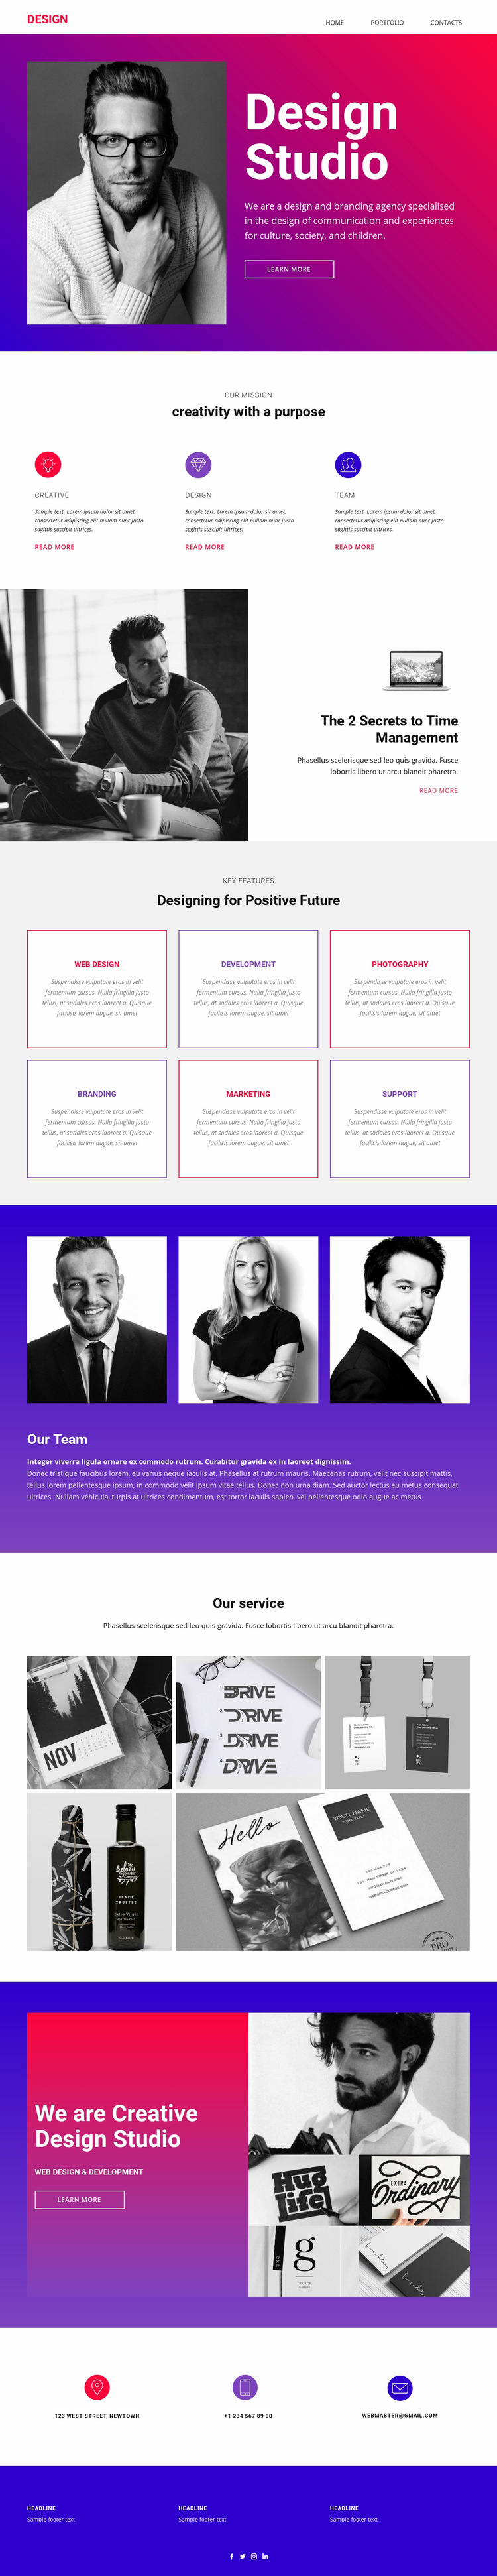 Fully integrated studio Web Page Design